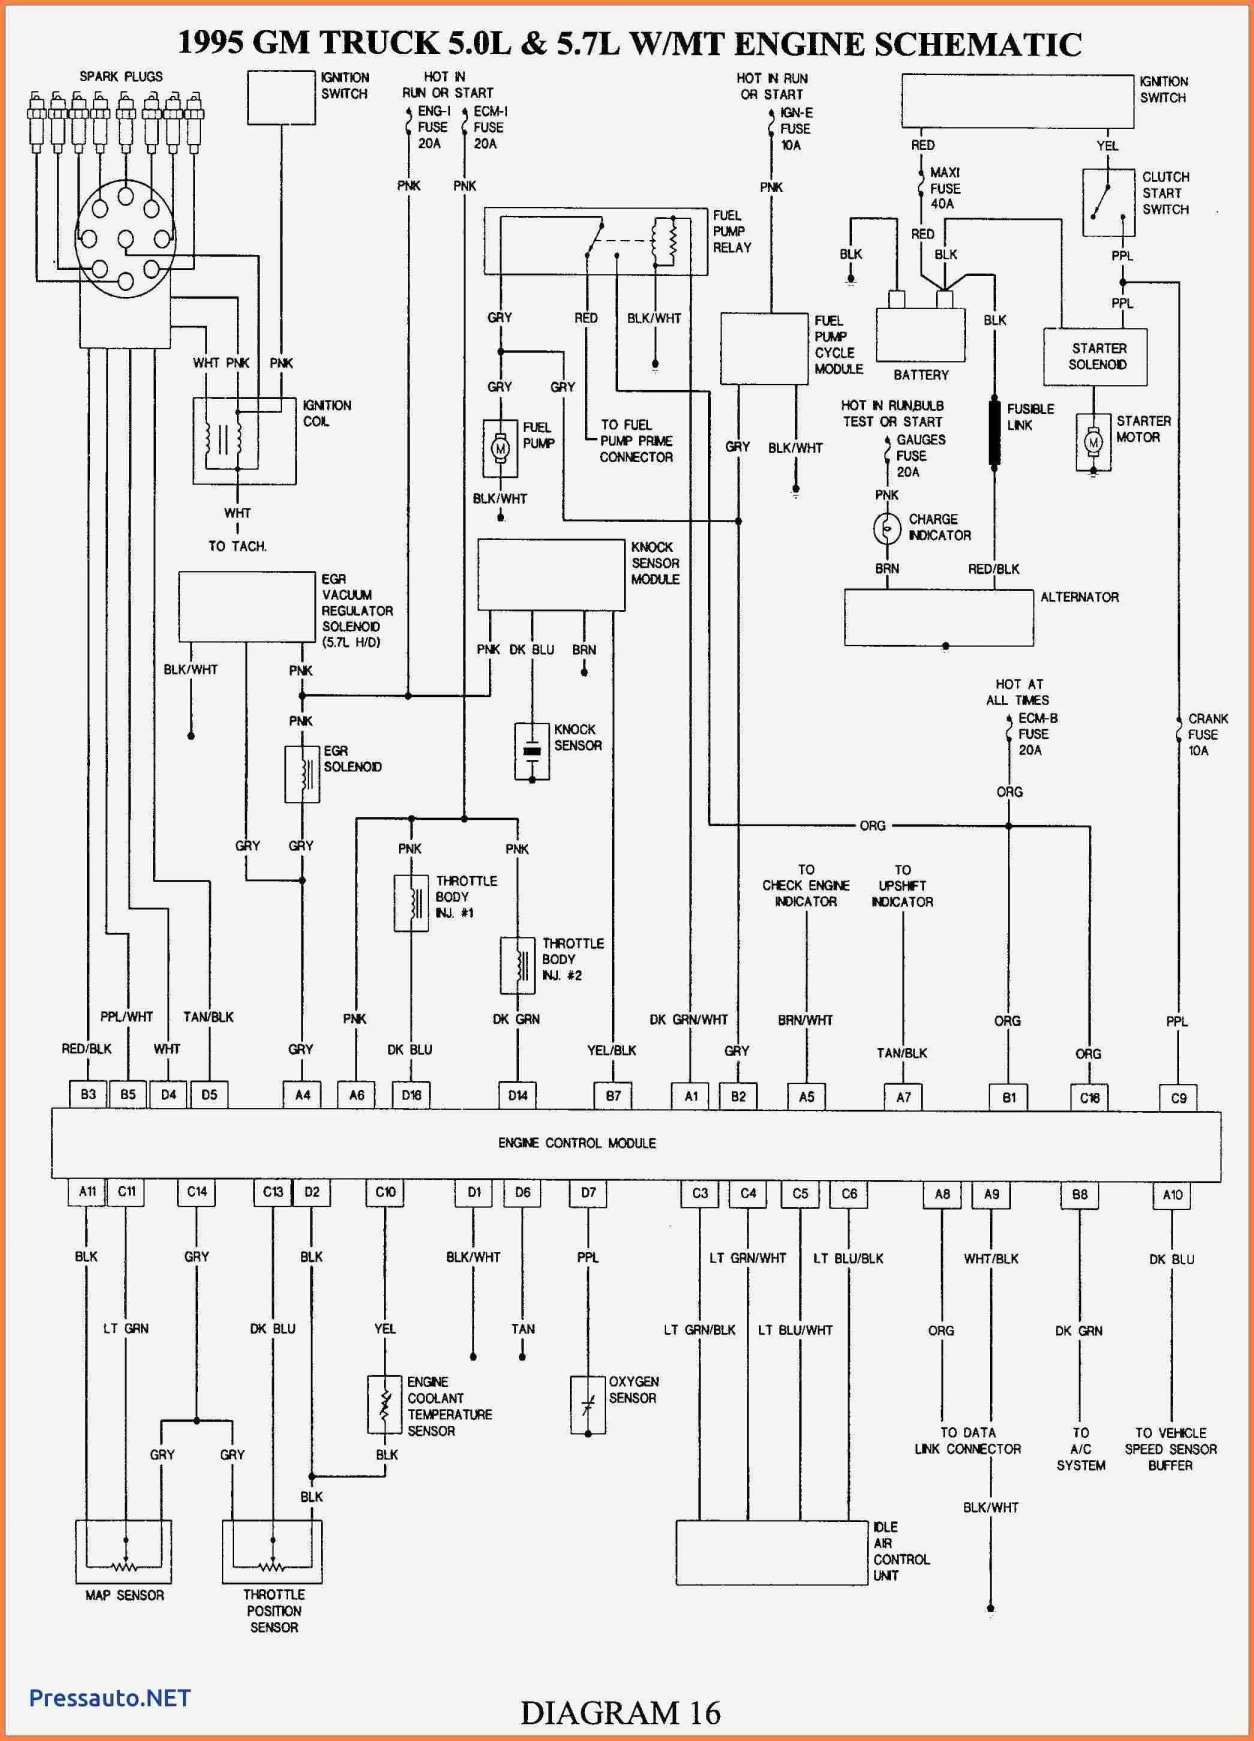 1985 S10 Wiring Harness - Ac Binary Switch Wiring Diagram for Wiring Diagram  SchematicsWiring Diagram Schematics